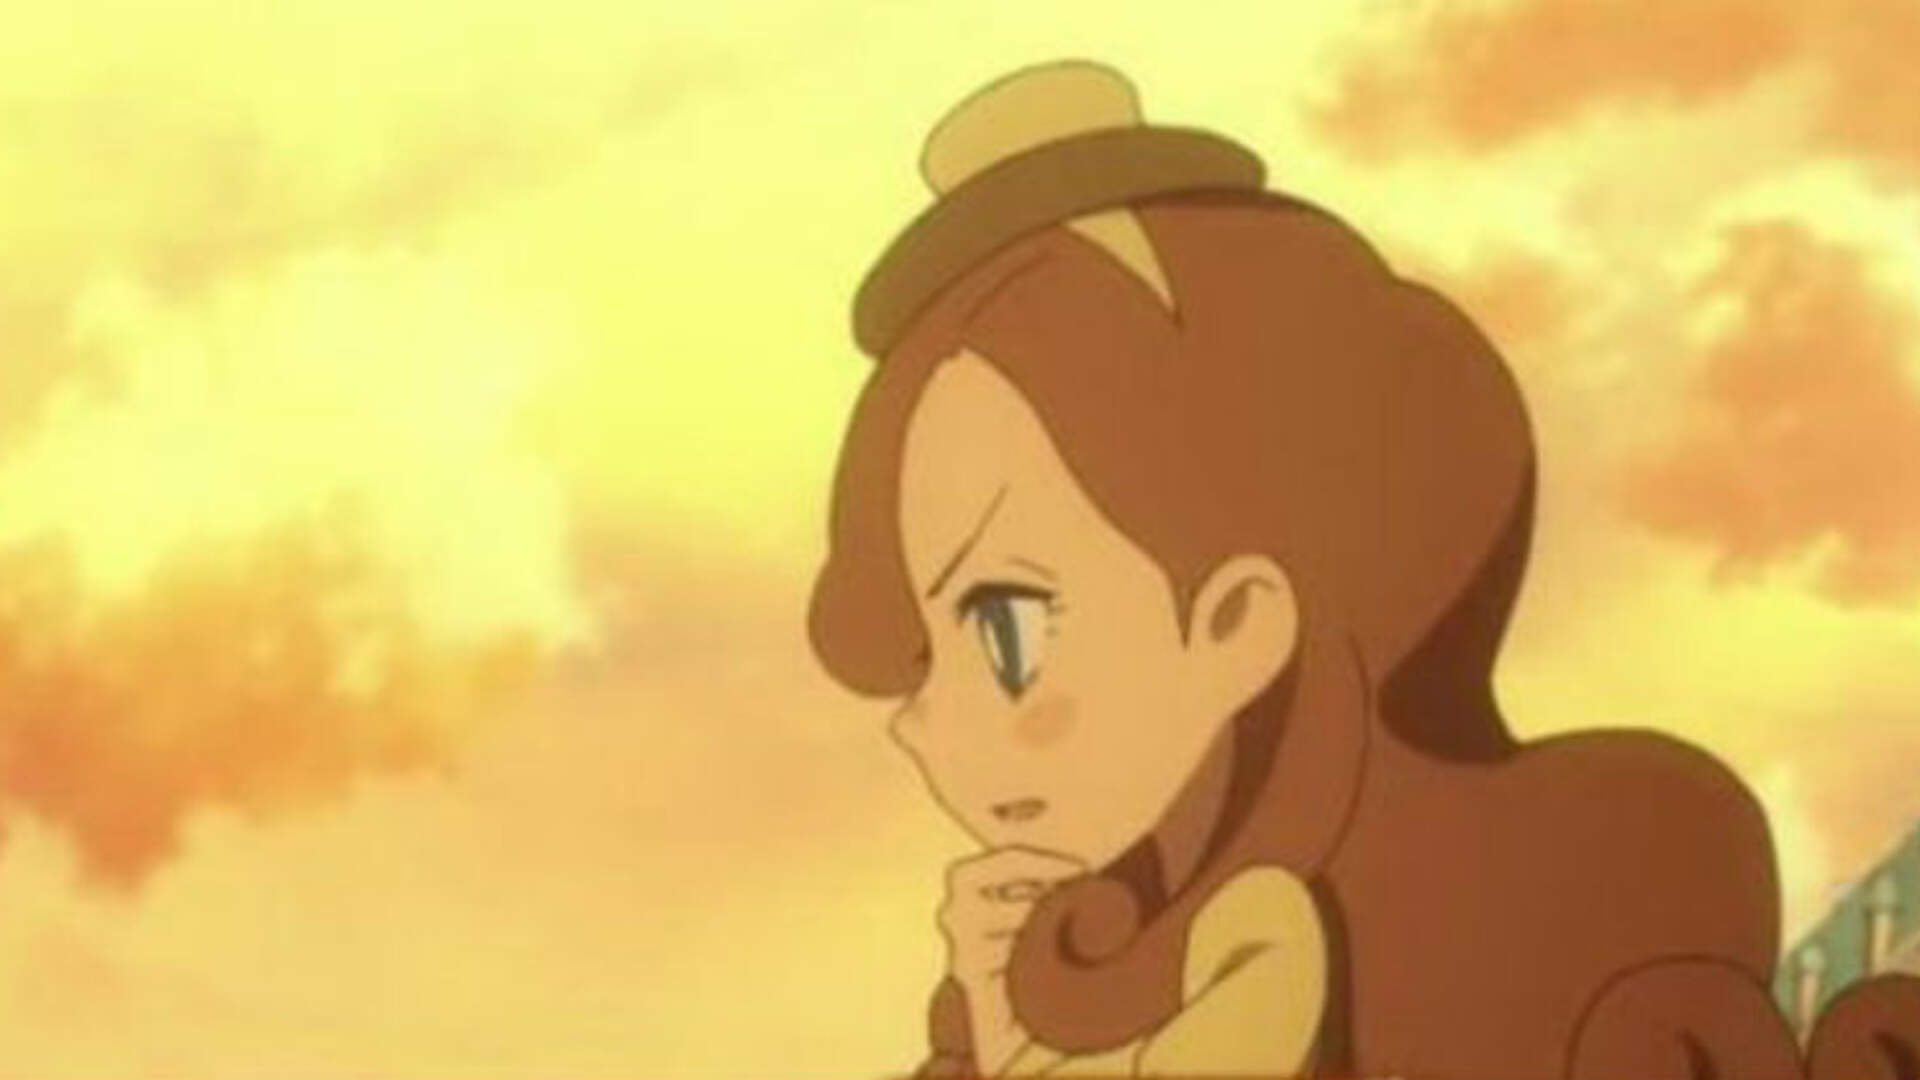 Catriel Layton Looks for Her Missing Dad in New Layton Game for Mobile and Nintendo 3DS